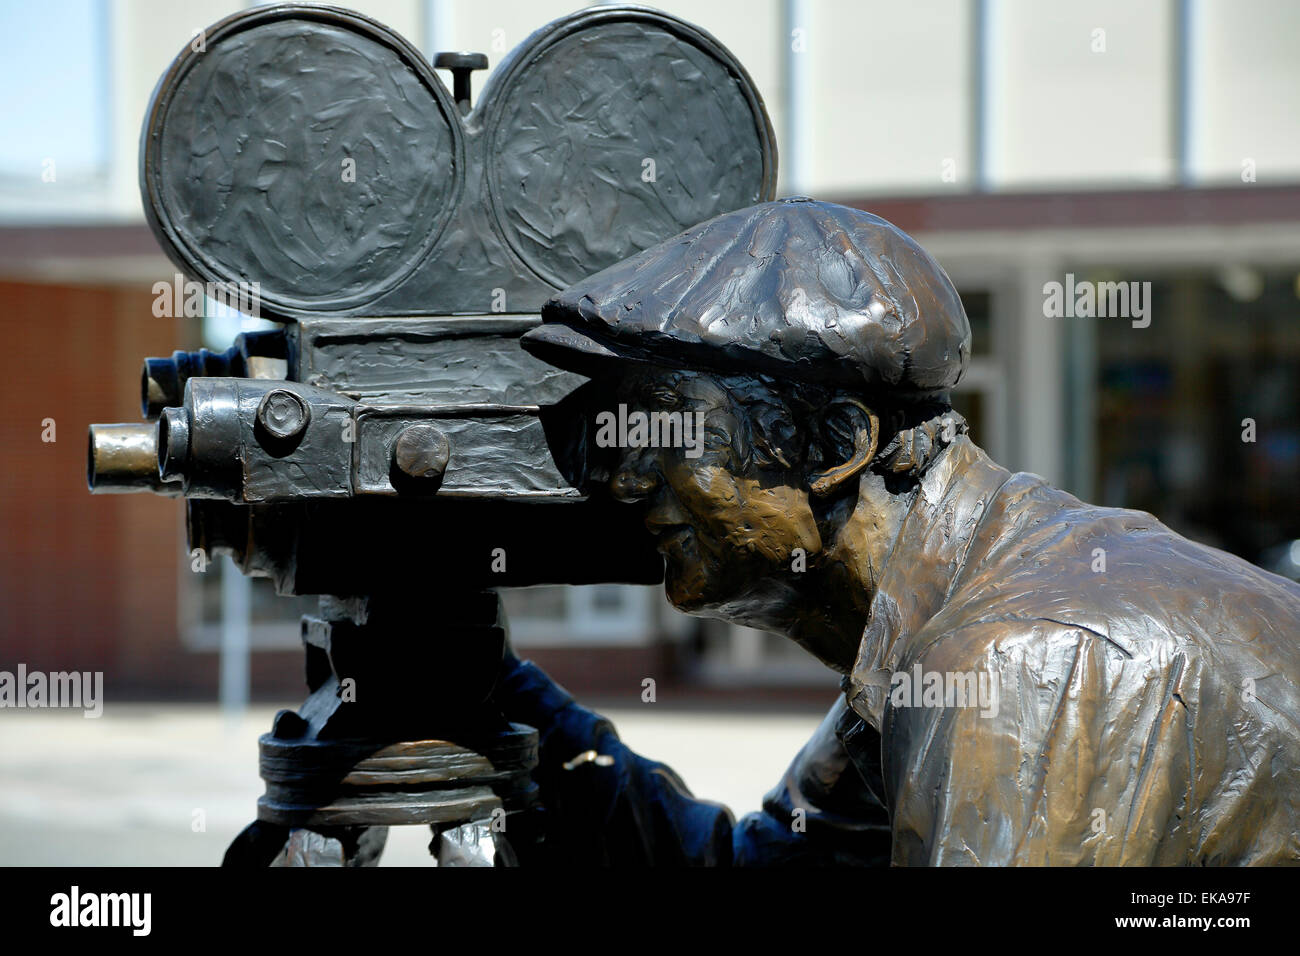 Detail of 'Persistence of Vision' sculpture, by Pat Kennedy, historic Downtown Loveland, Colorado USA - Stock Image